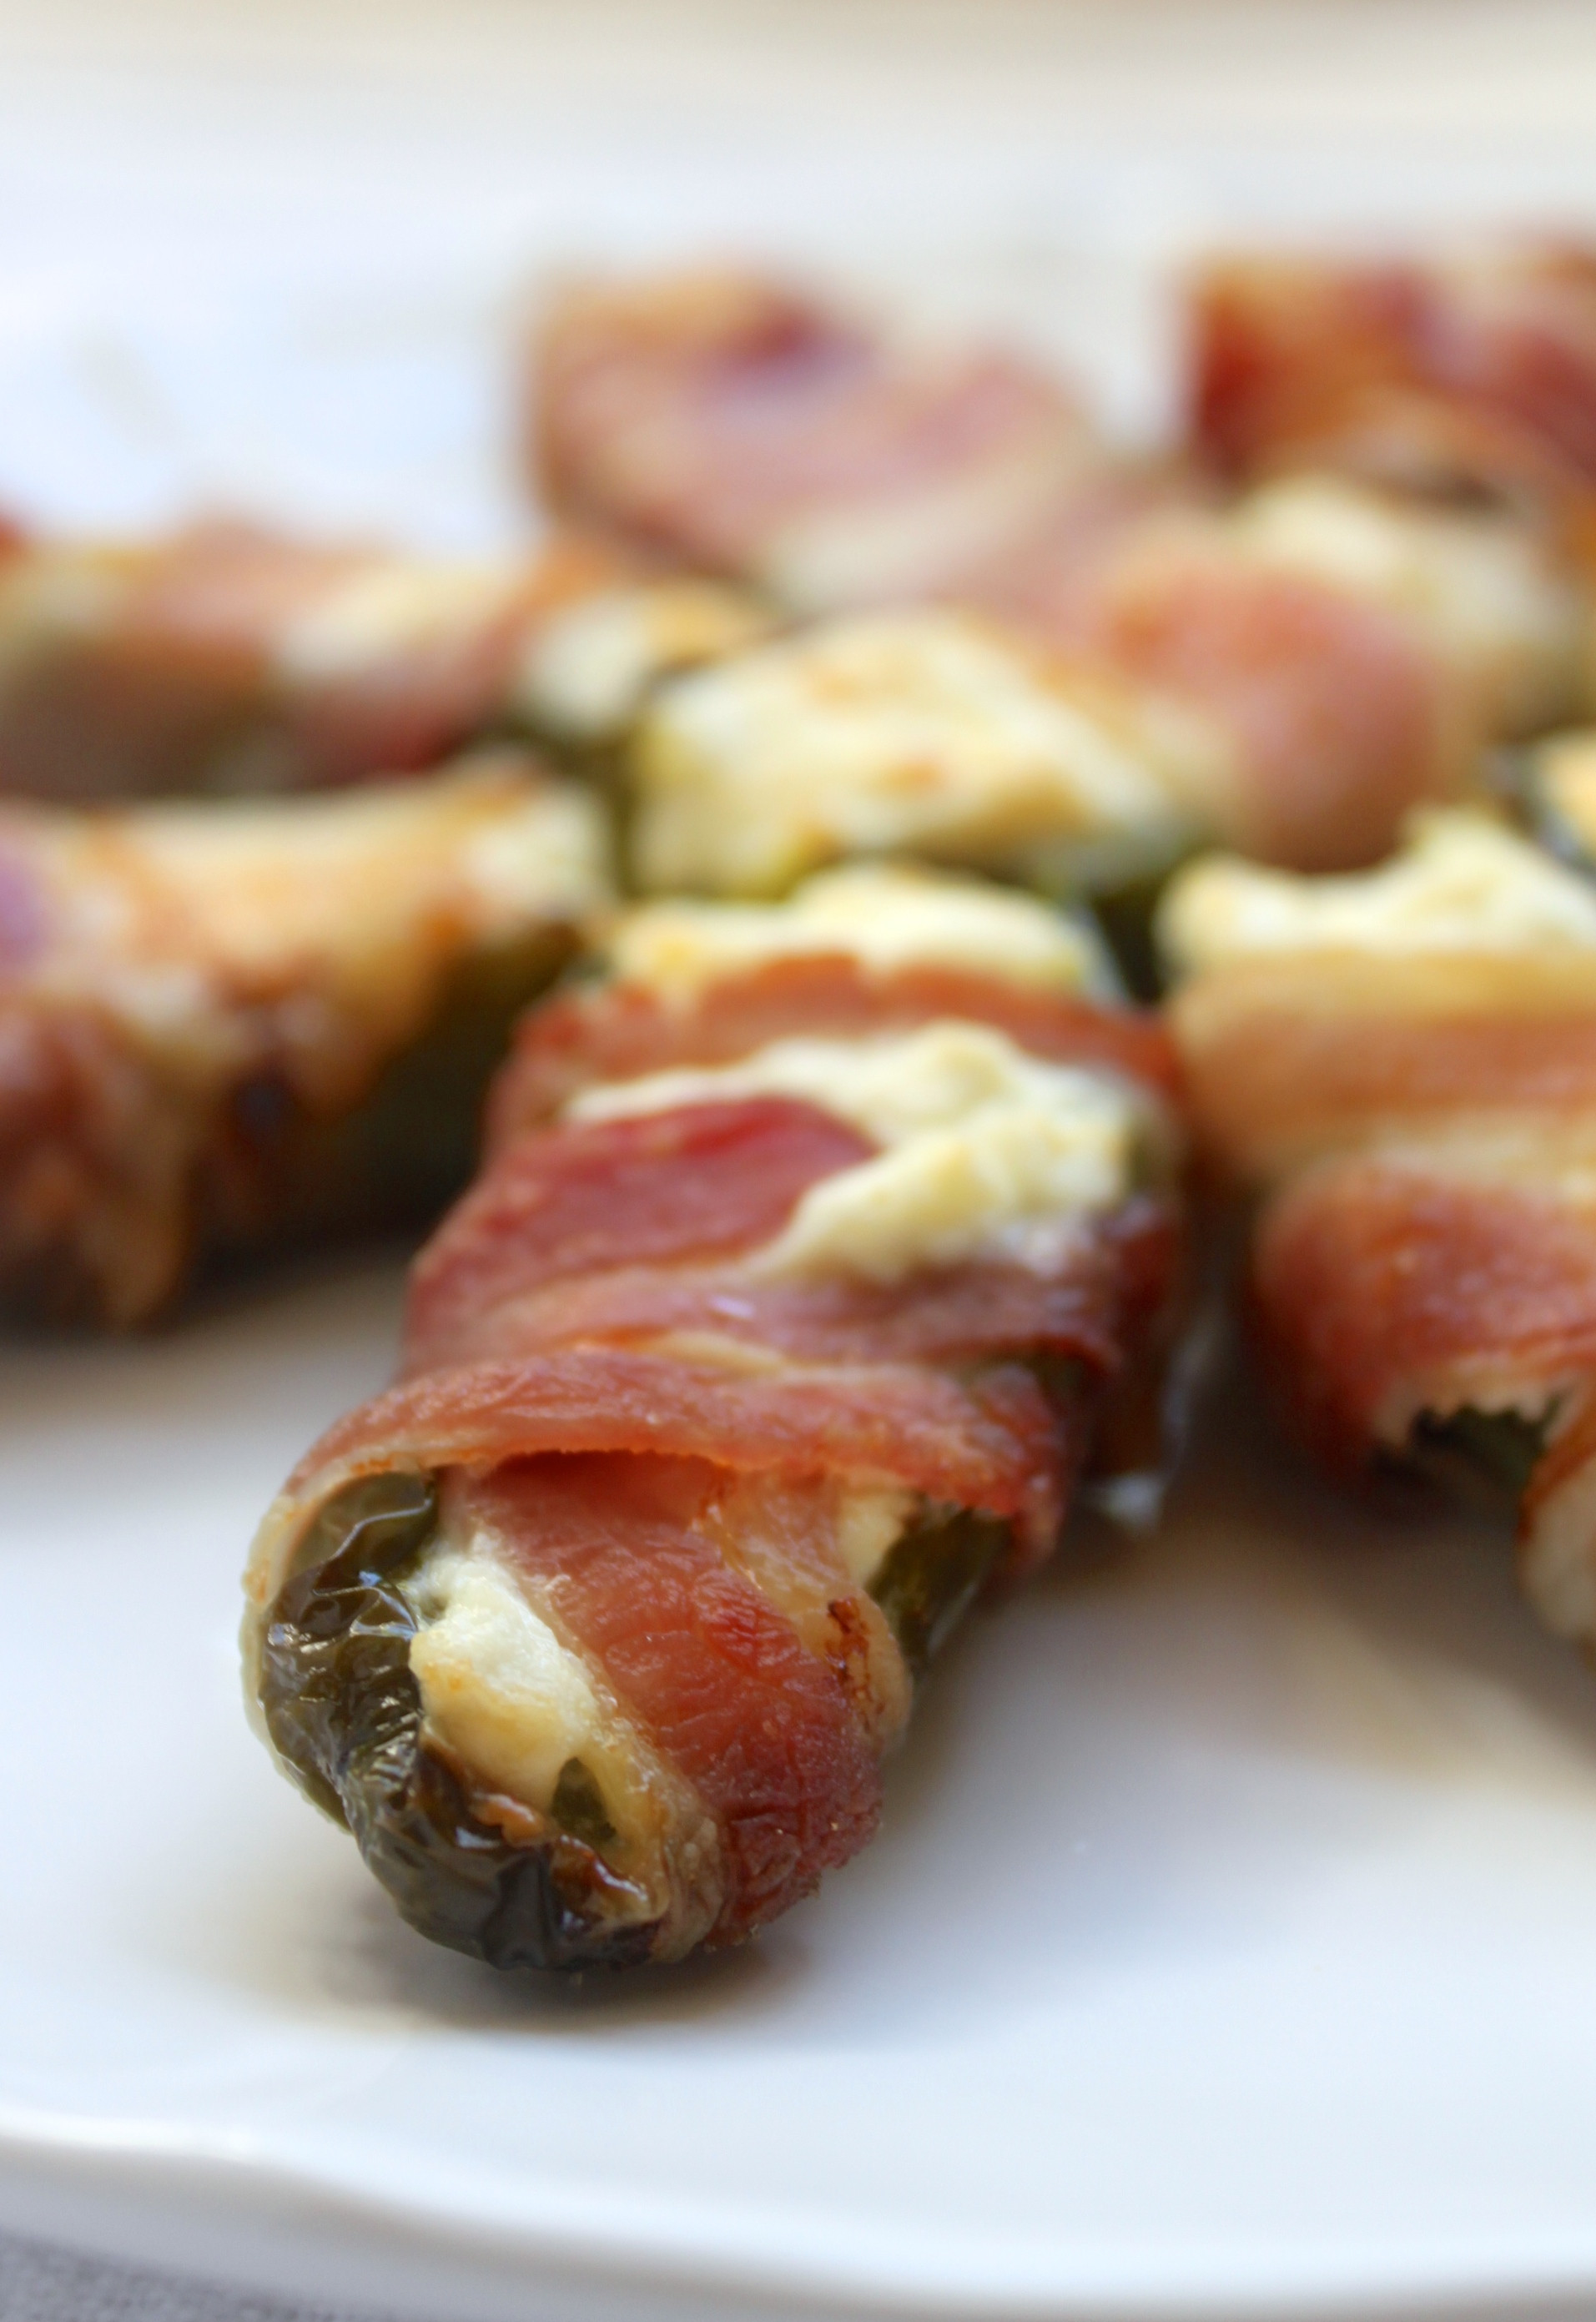 Appetizers With Cream Cheese  Jalapeno Cream Cheese & Bacon Appetizers ey re